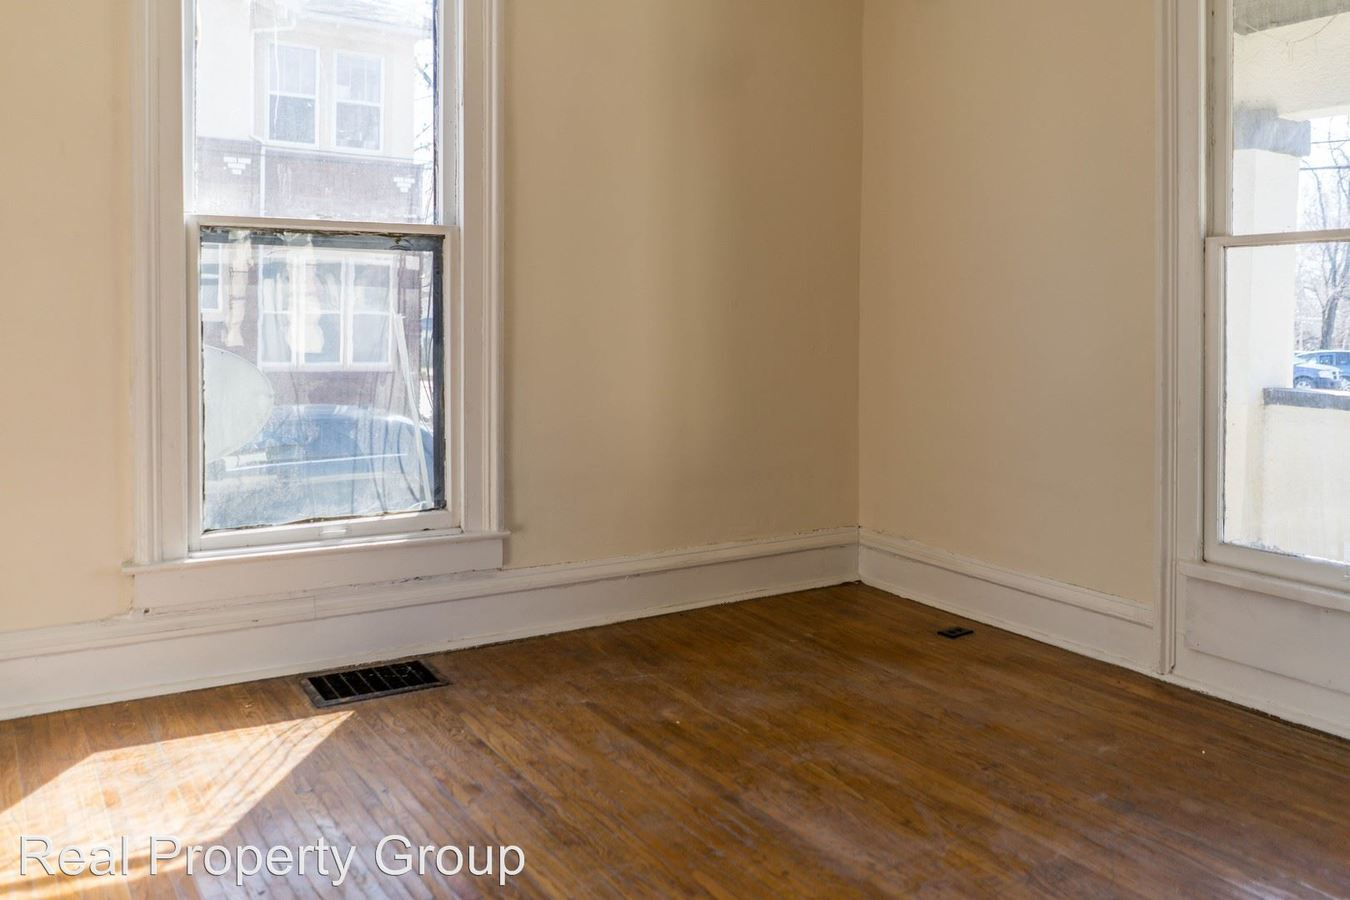 2 Bedrooms 1 Bathroom Apartment for rent at 402 N Tenth St. in Columbia, MO